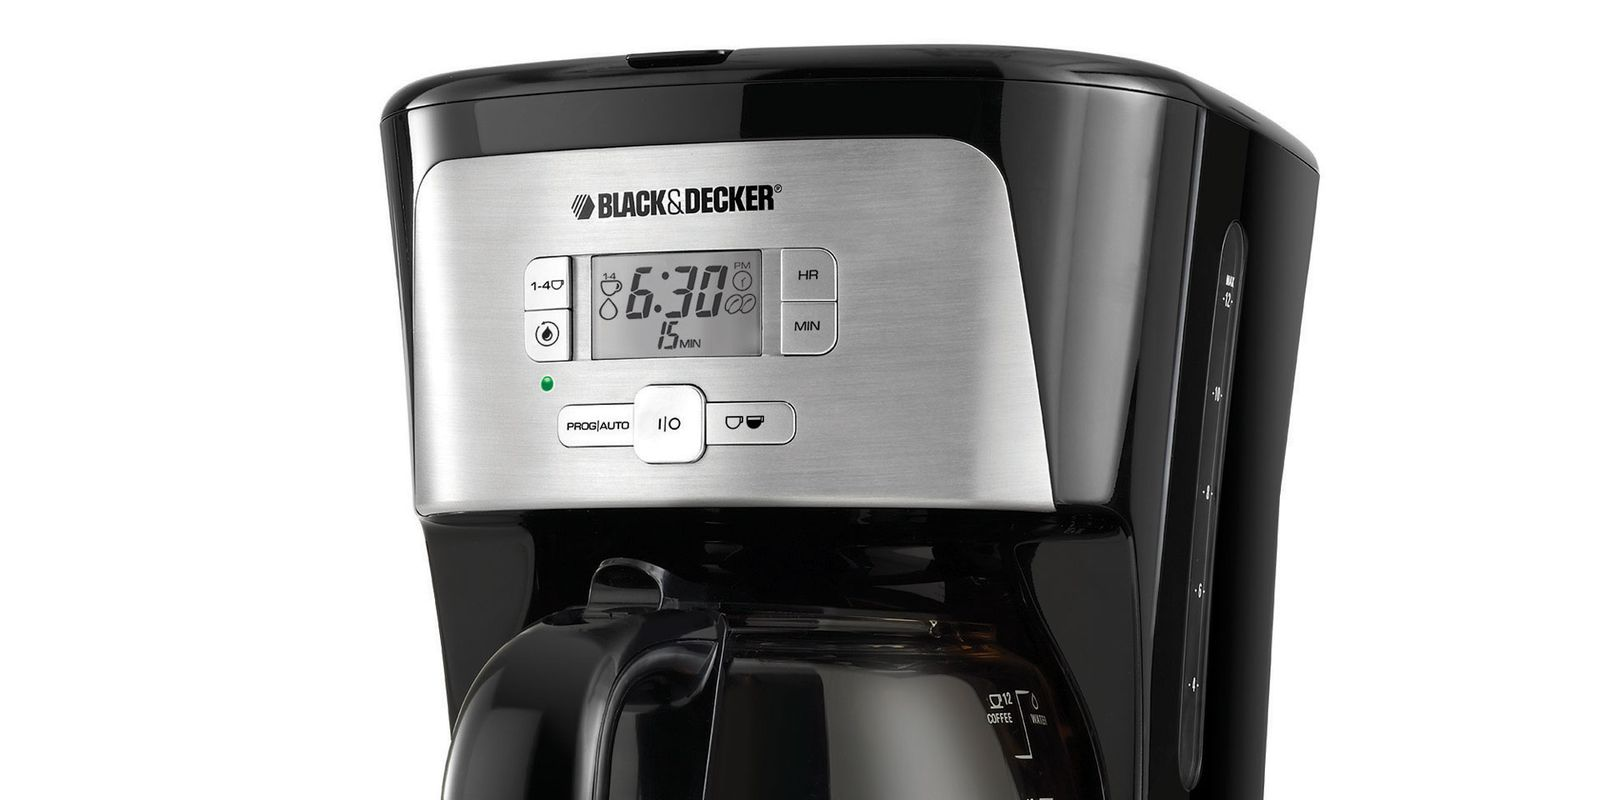 Black and decker coffee maker 12 cup programmable - Black And Decker Coffee Maker 12 Cup Programmable 2